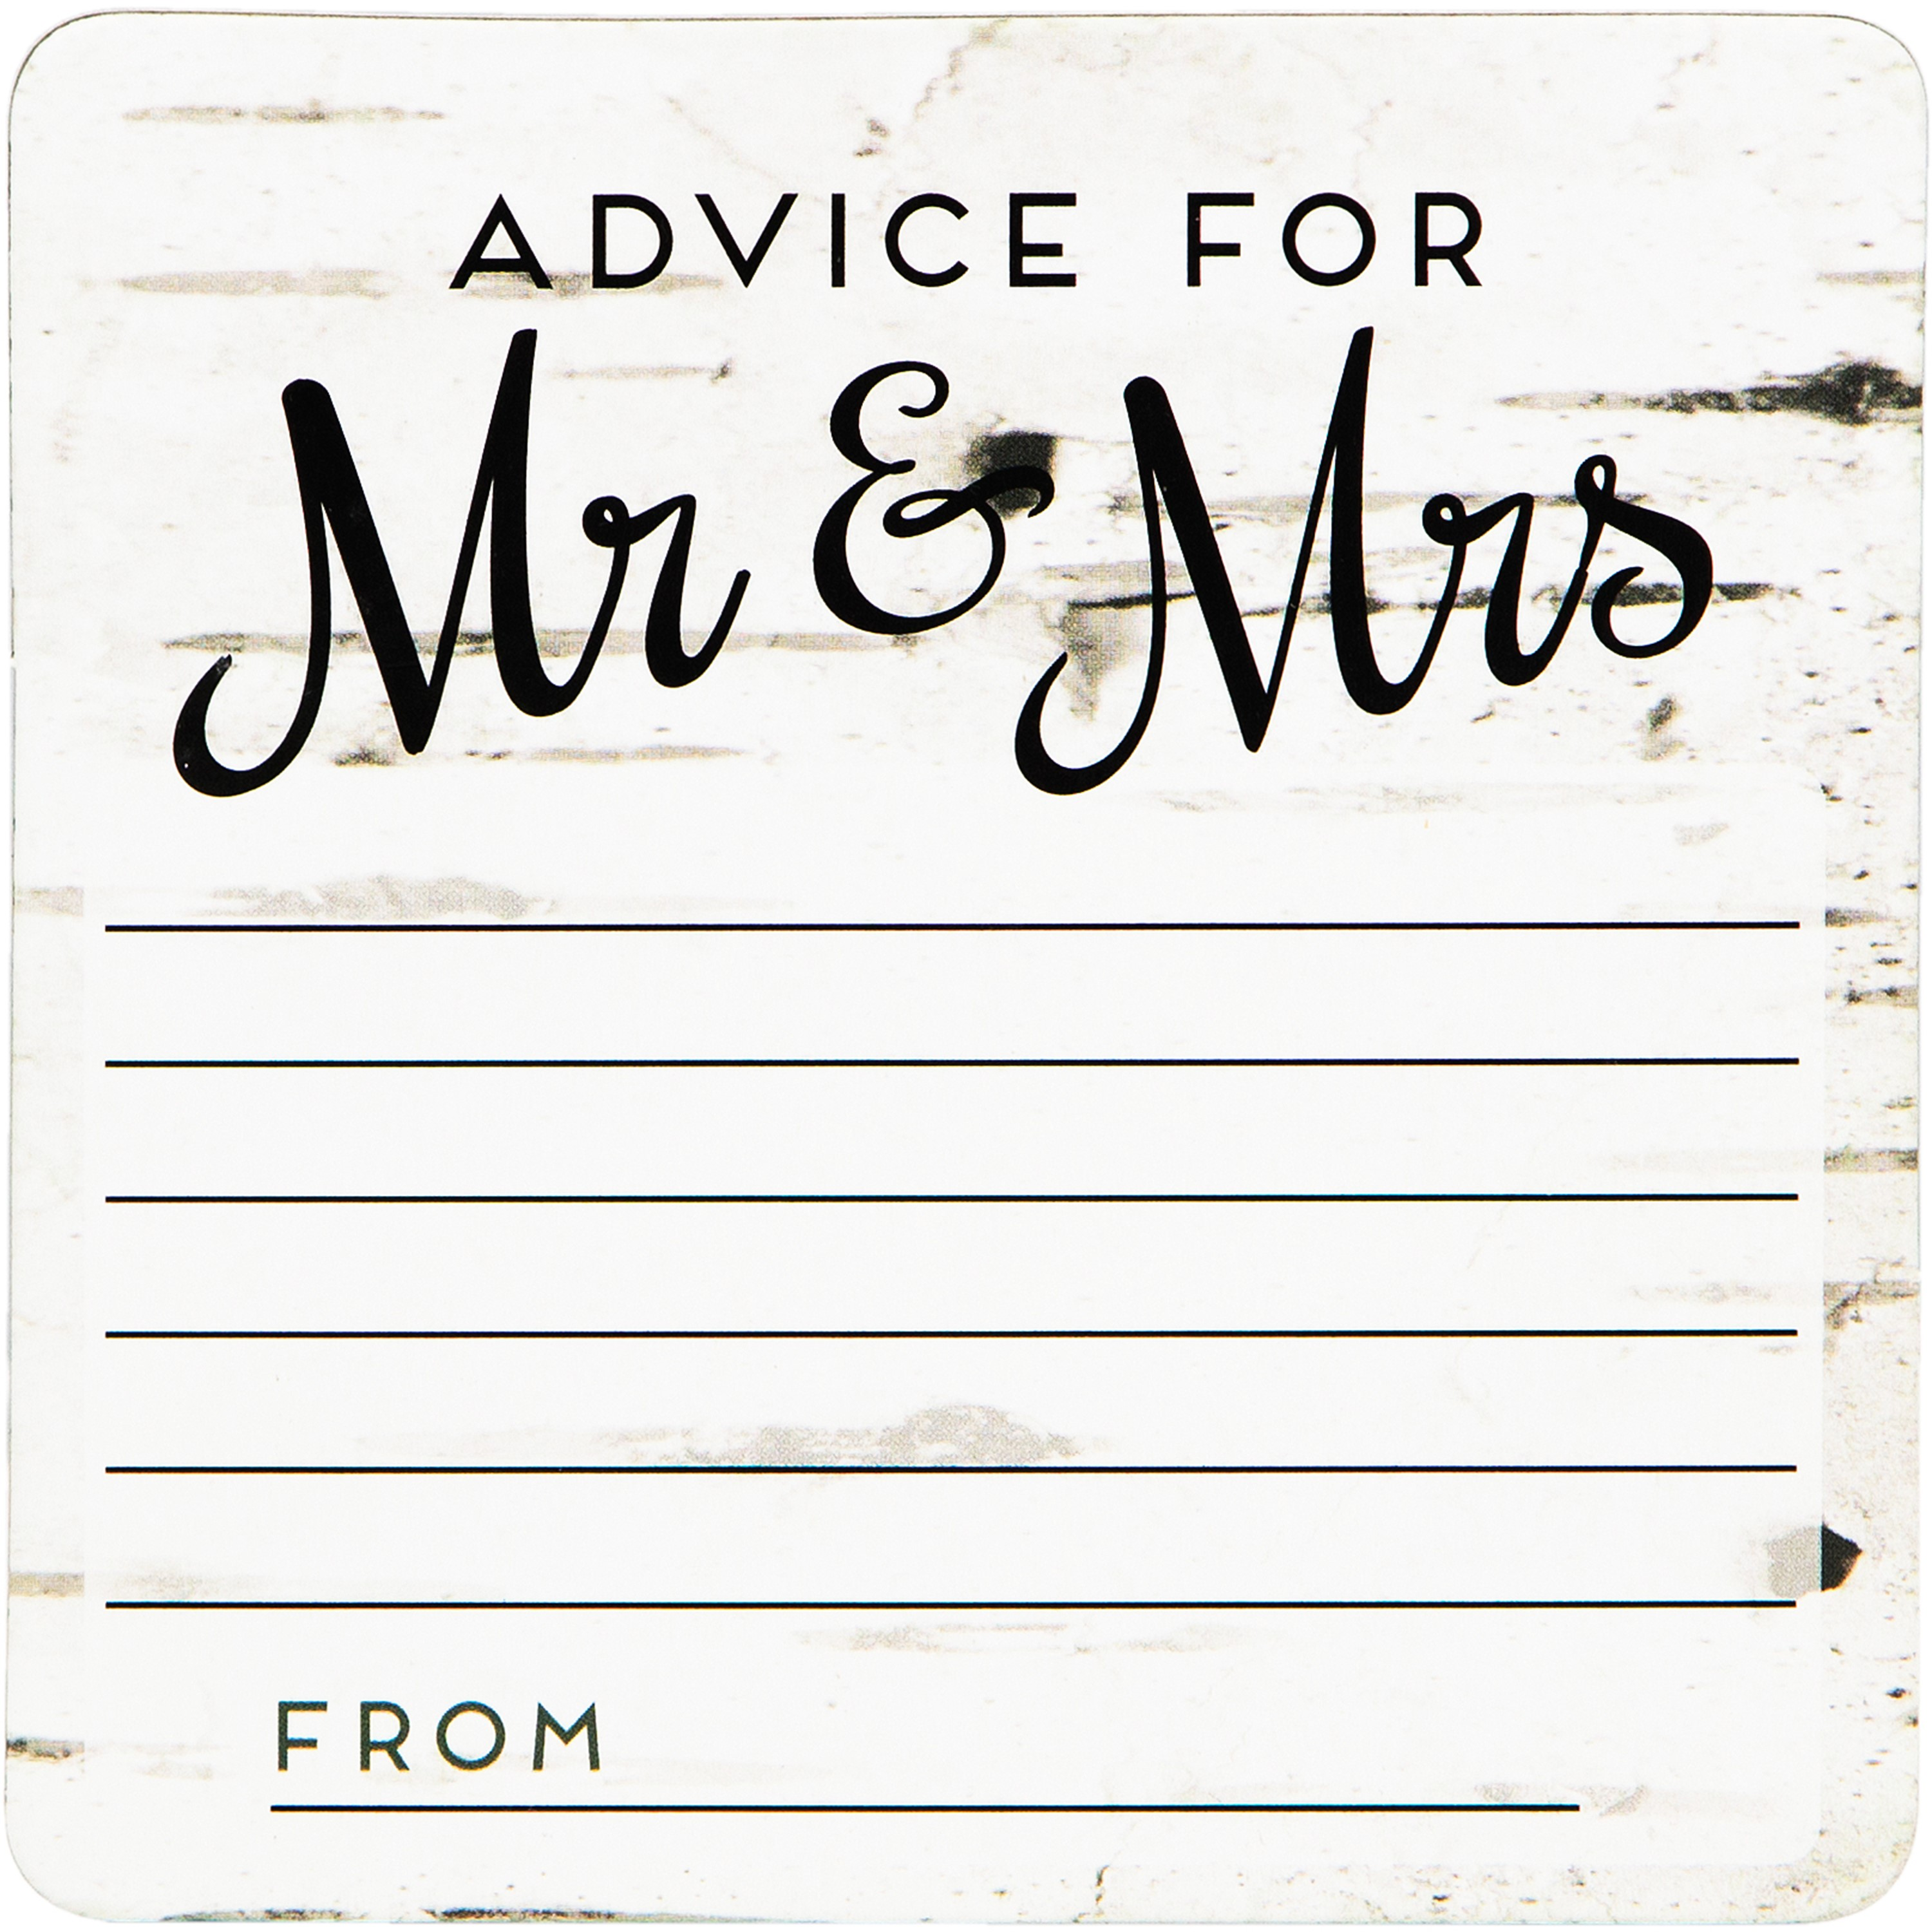 """4"""" x 4"""" Mr. & Mrs. Advice Coasters, 20-Count by CREATIVE CONVERTING"""